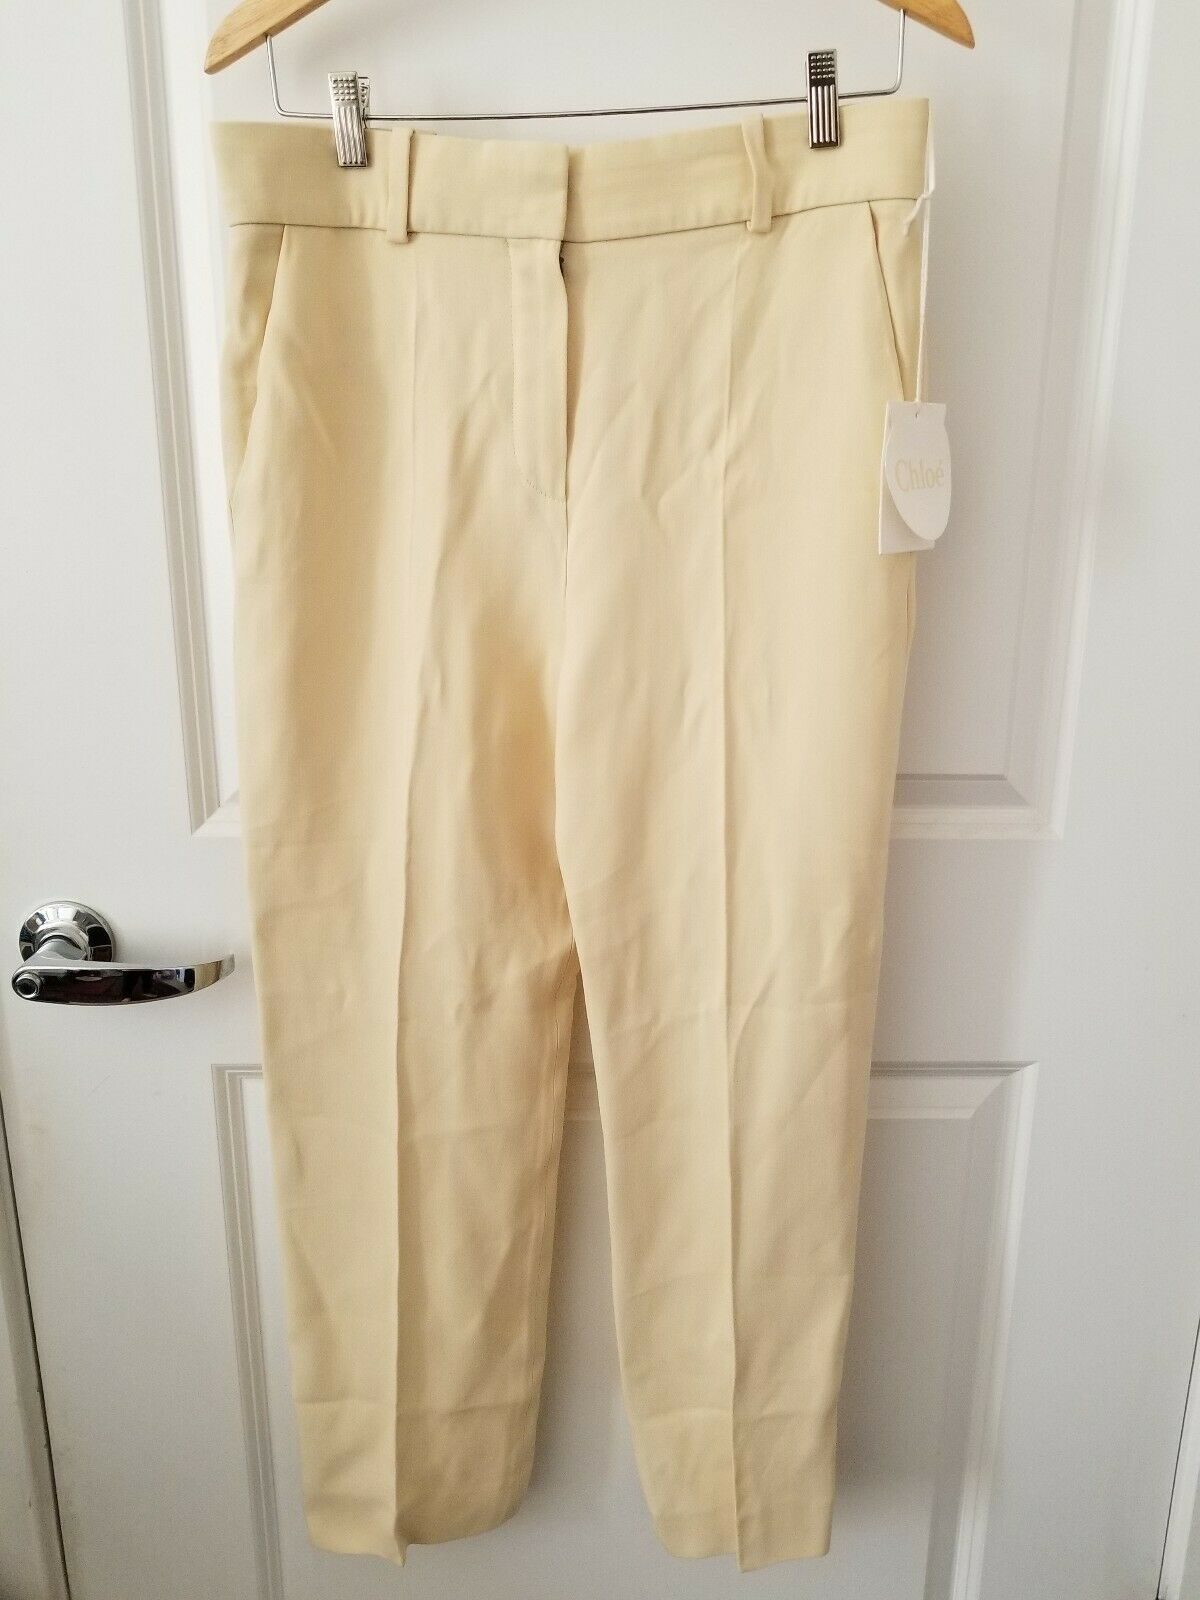 Authentic Chloe cream color pants, size 38